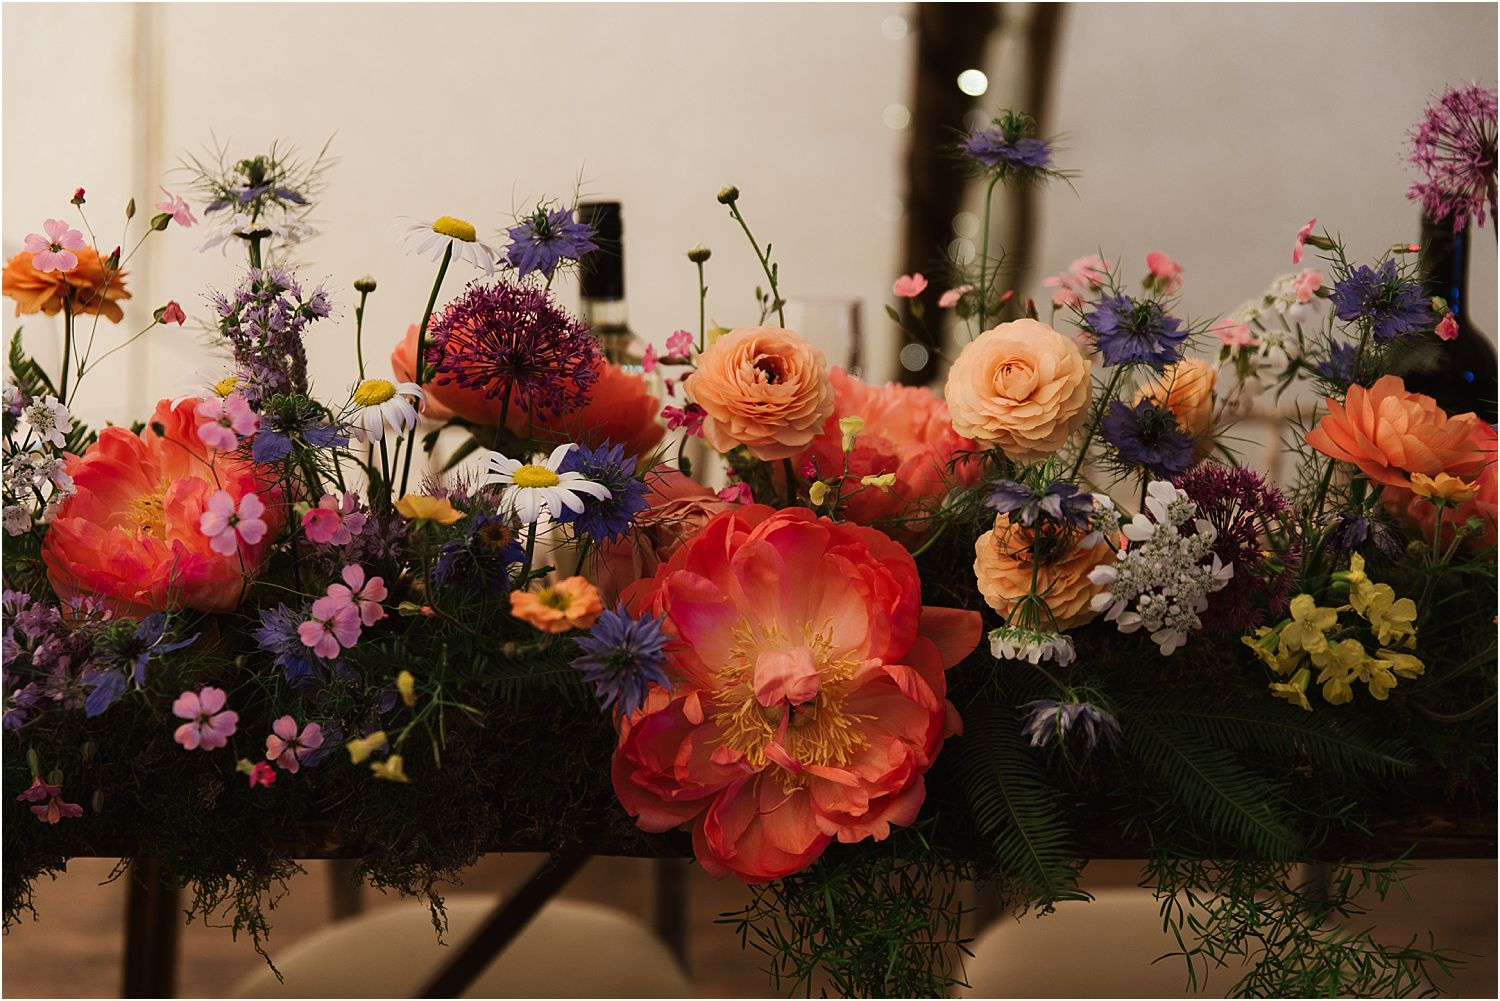 Reception flowers by Felicity Farm Flowers at Lancshire farm wedding